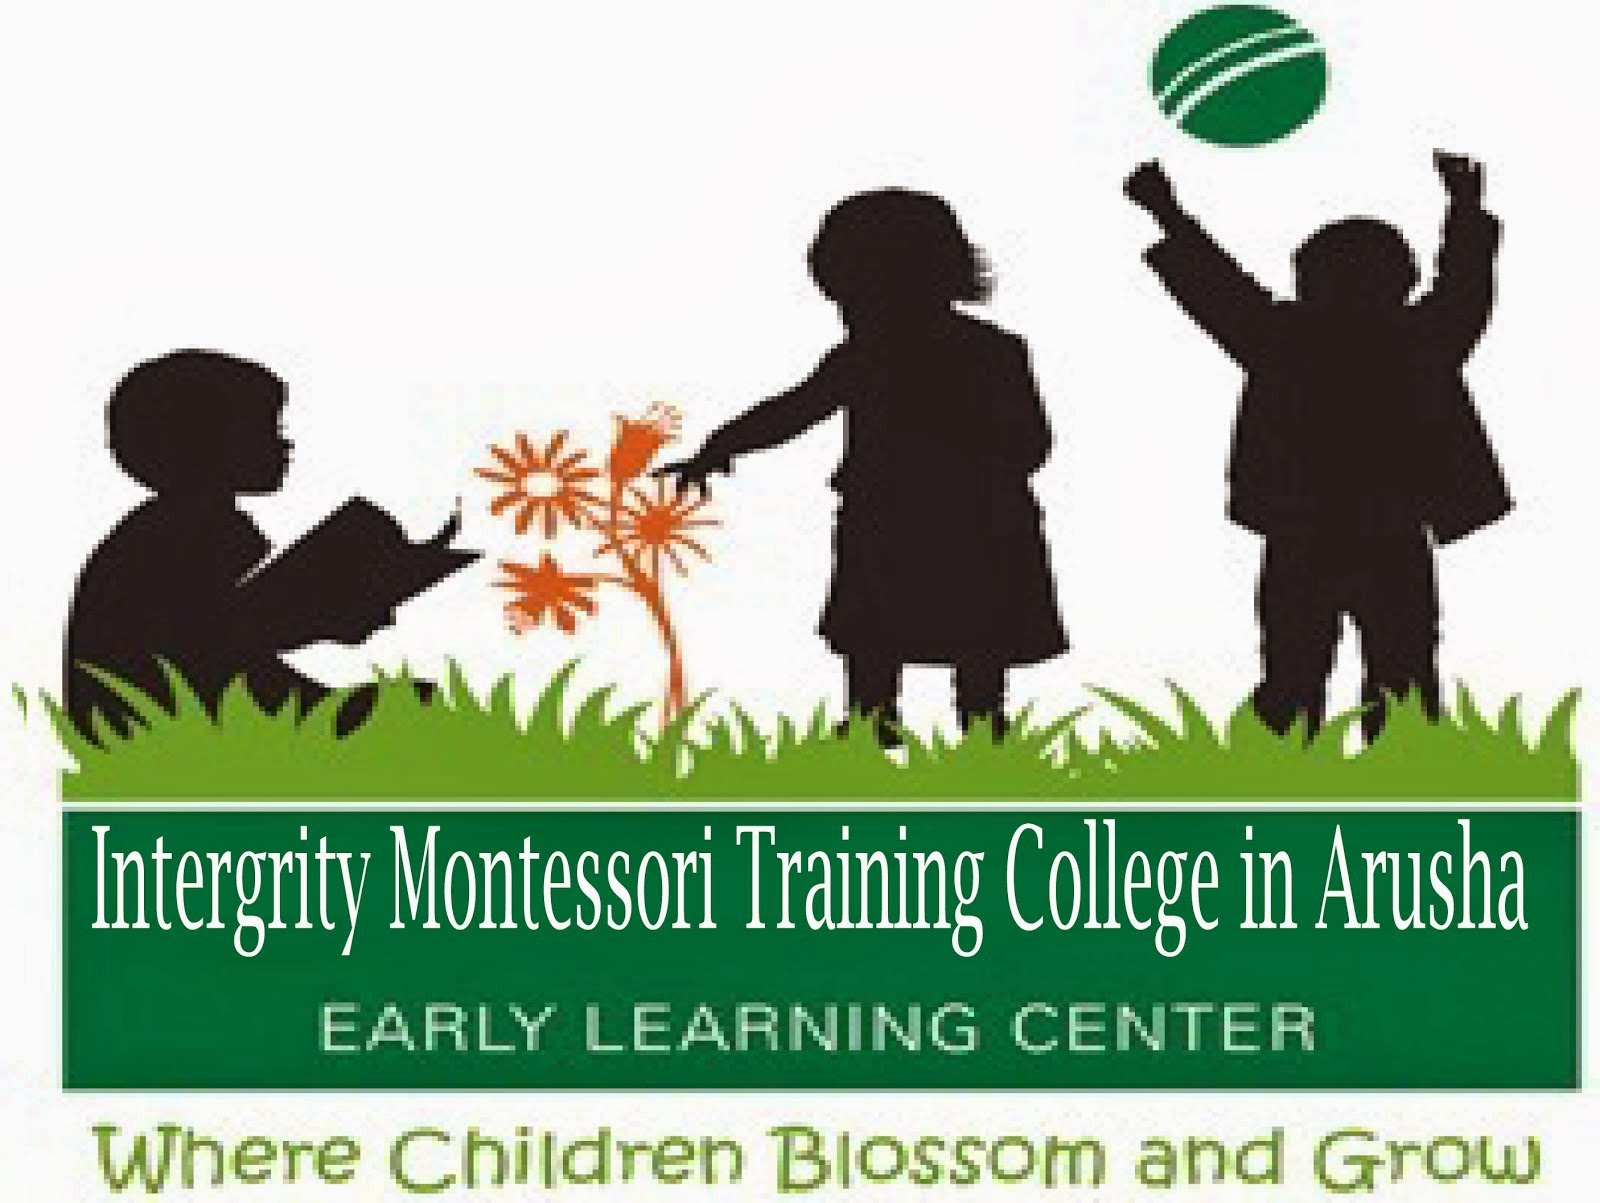 Intergrity Montessori Training College